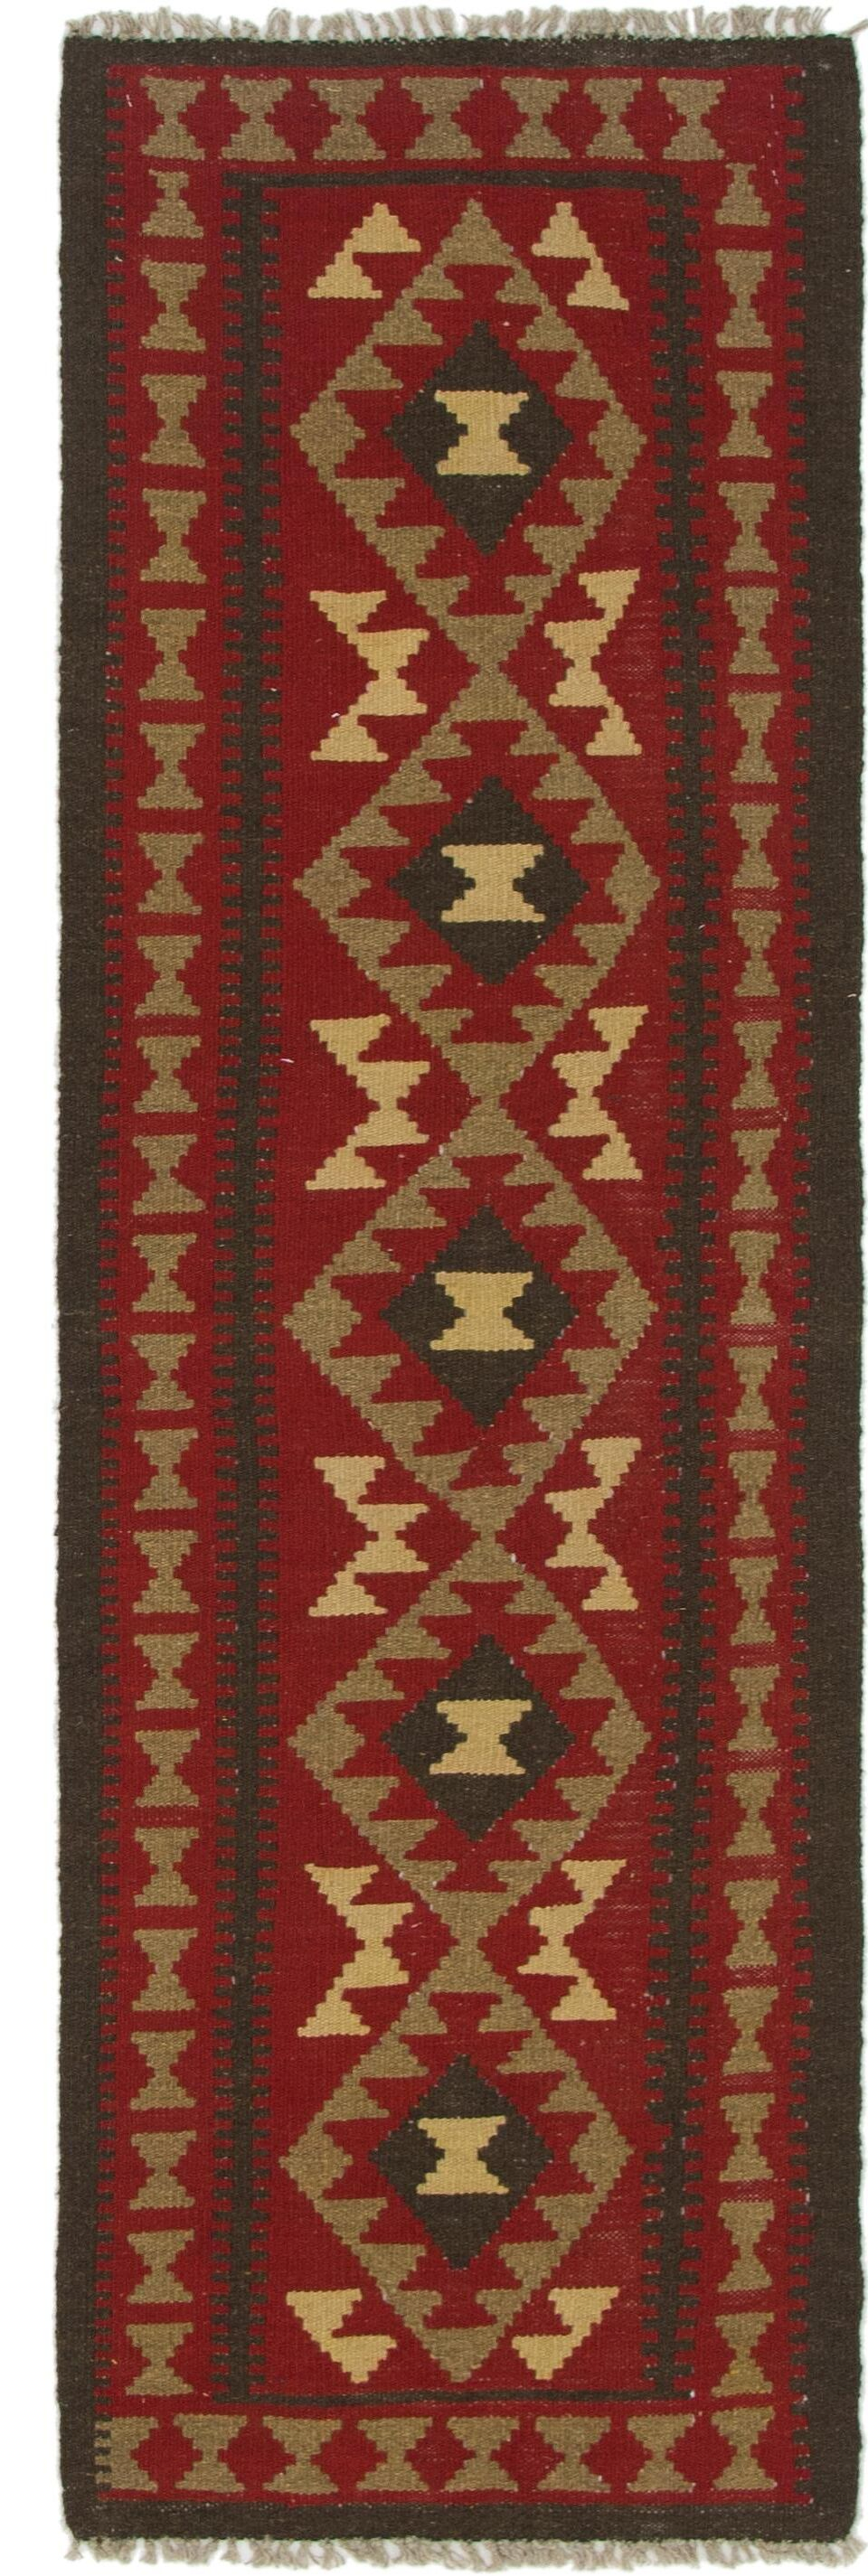 One-of-a-Kind Lorain Hand-Knotted Wool  2' x 7' Red/Brown Area Rug